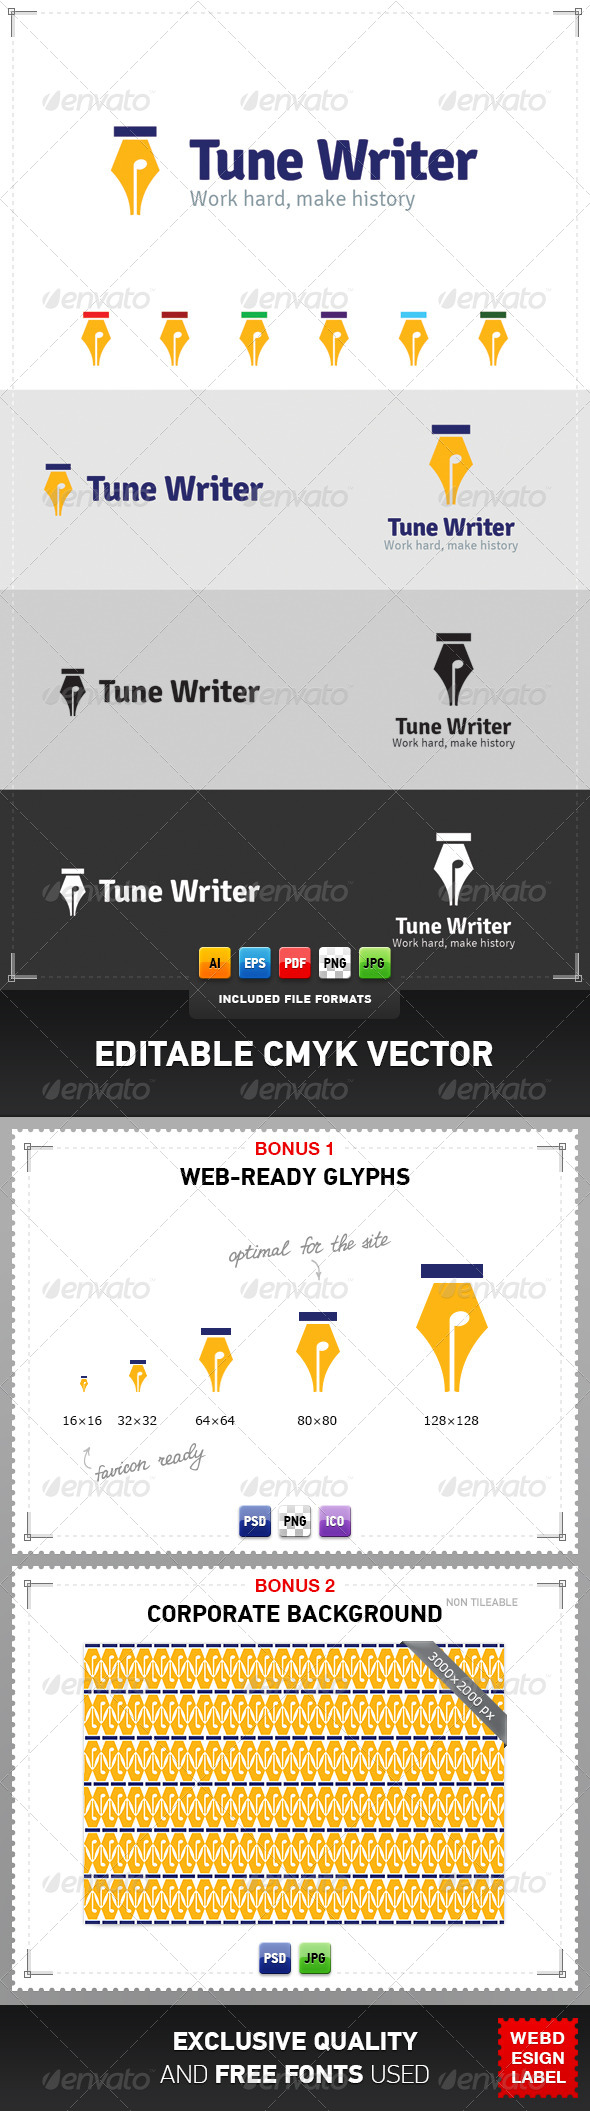 Tune Writer Logo - Objects Logo Templates